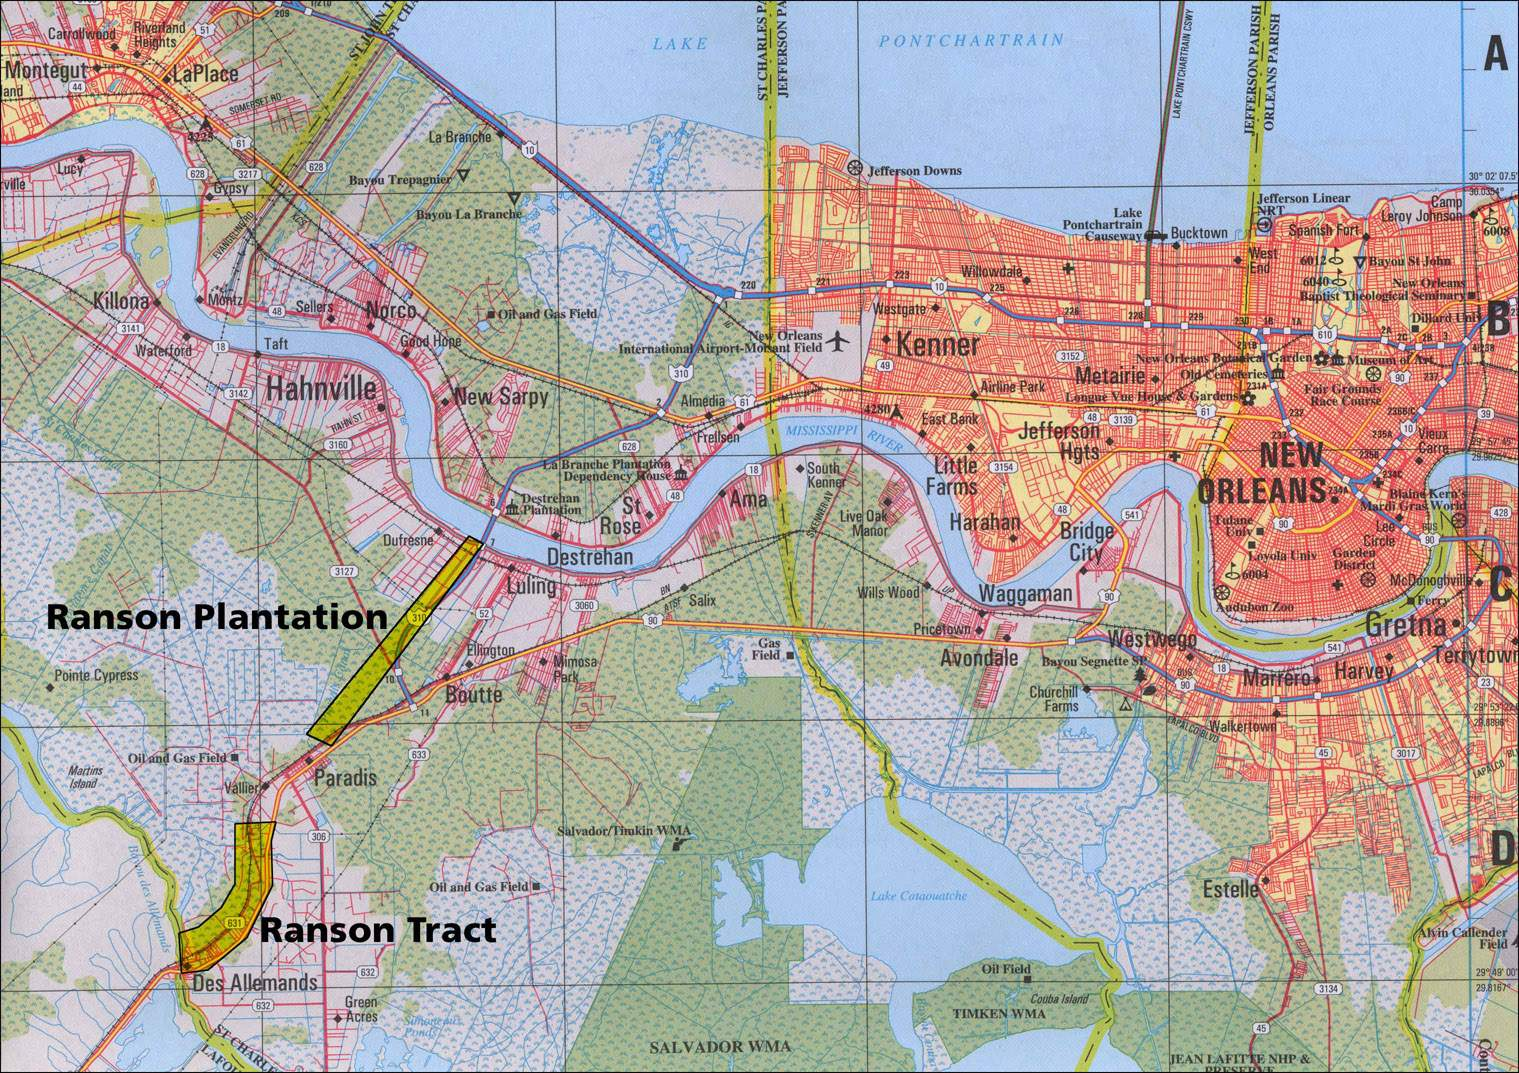 Large New Orleans Maps For Free Download And Print High - New orleans usa map